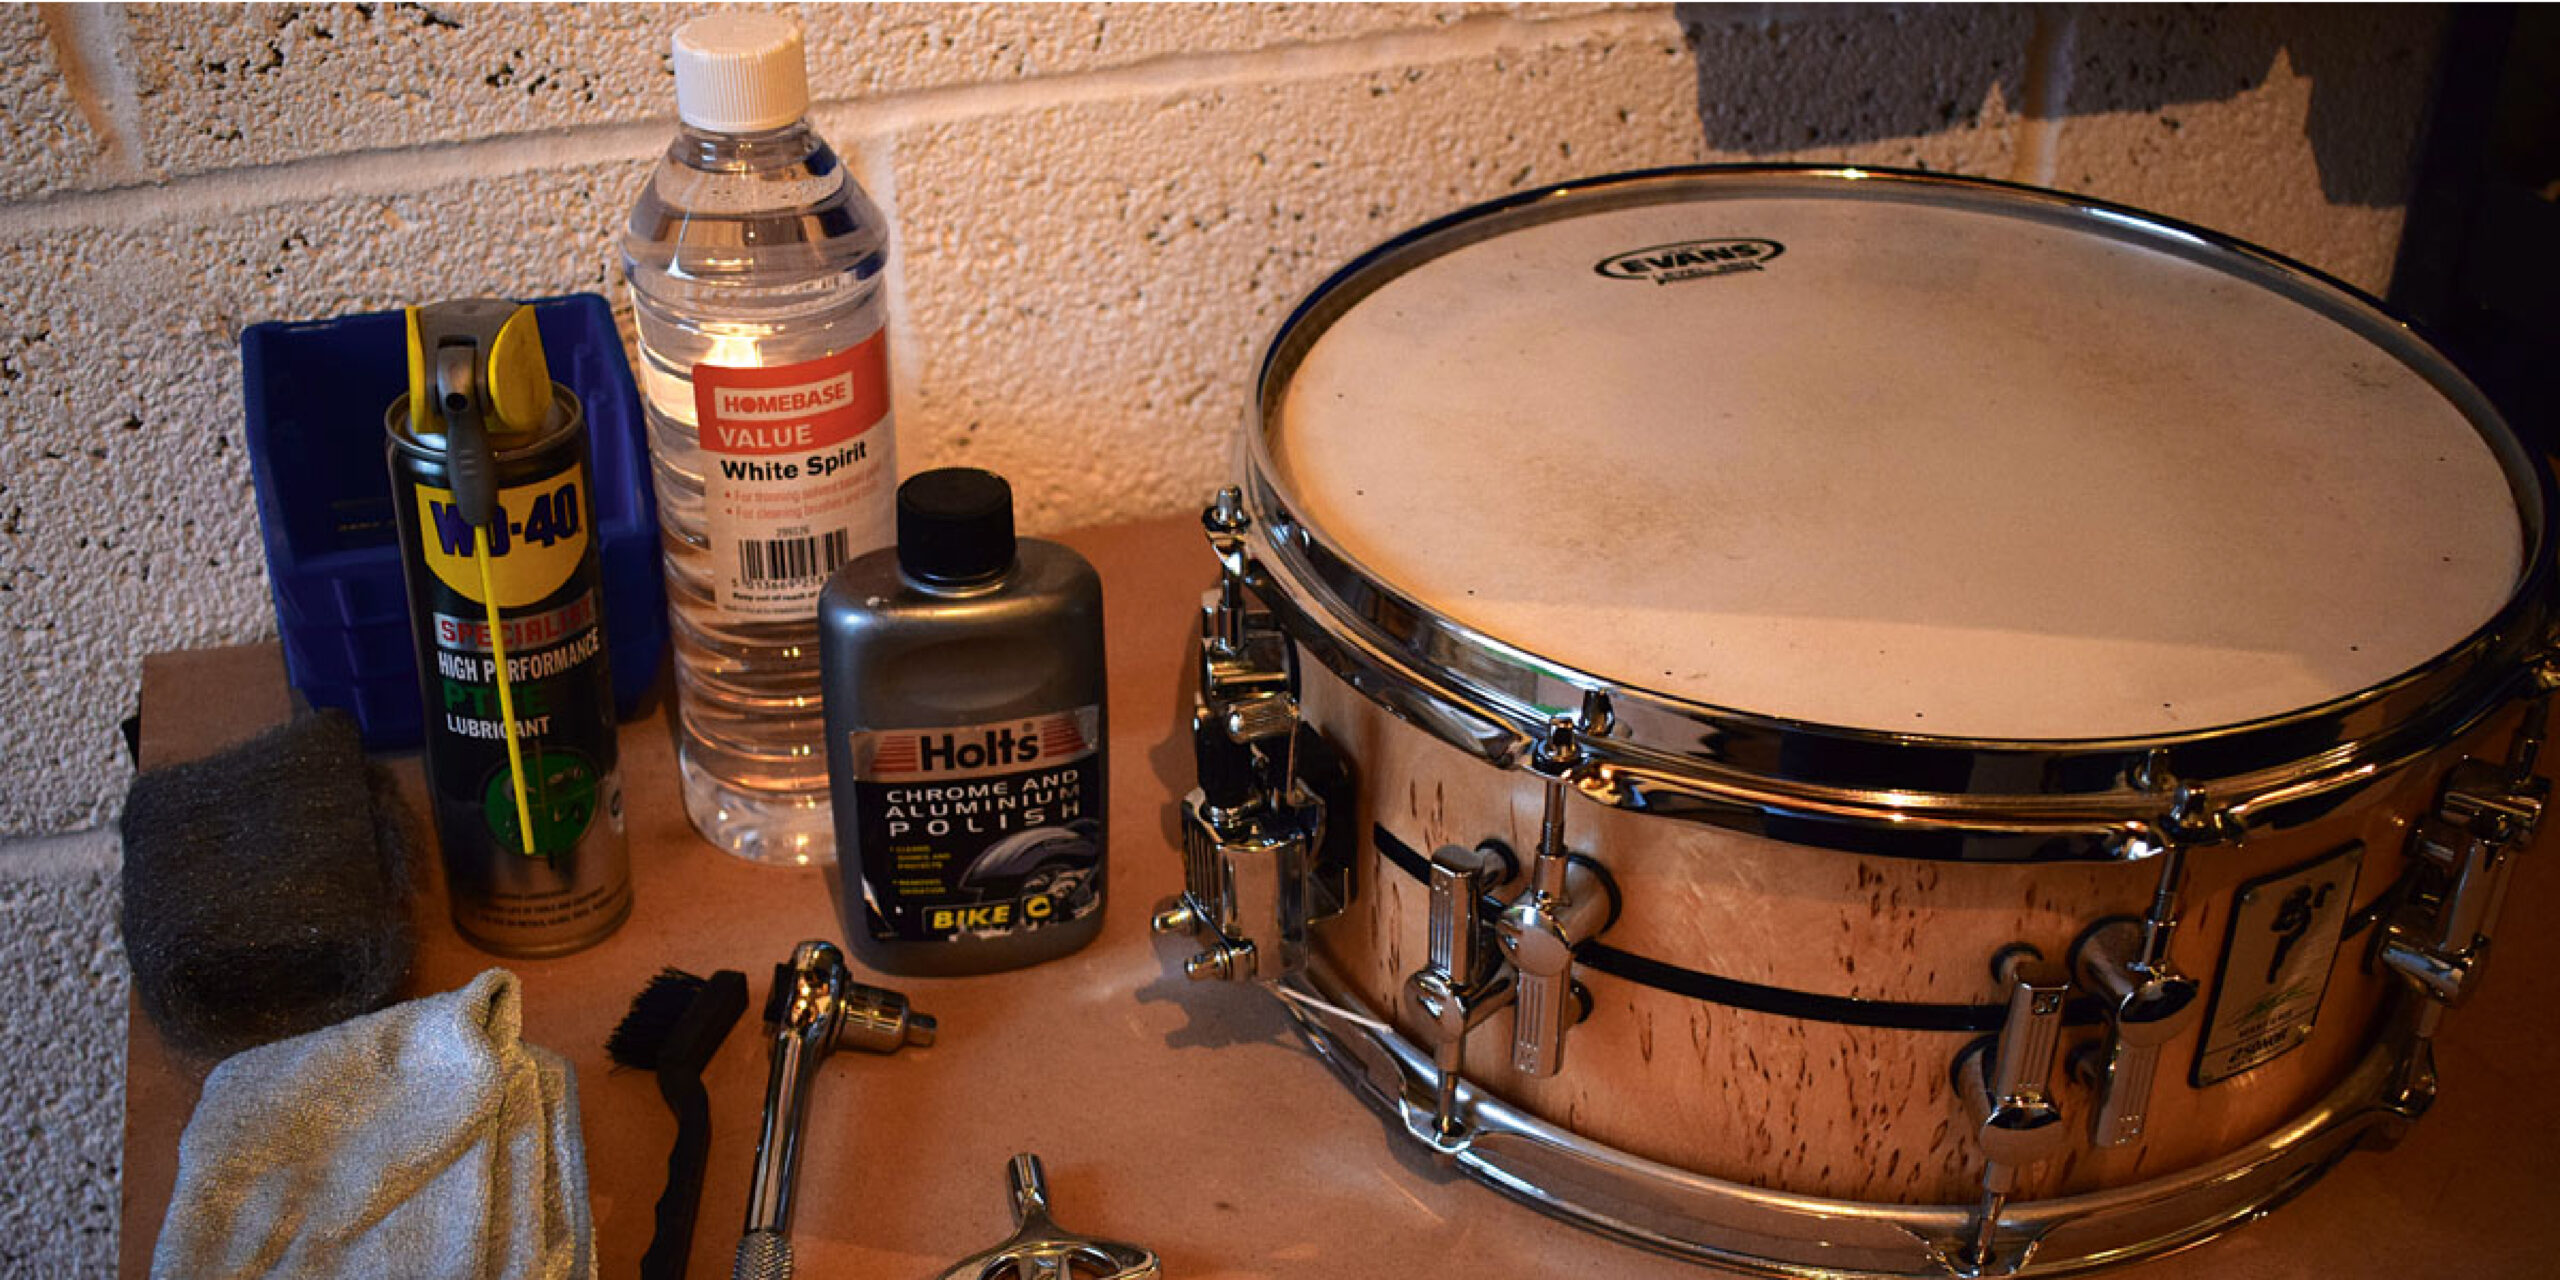 How to Clean Drums